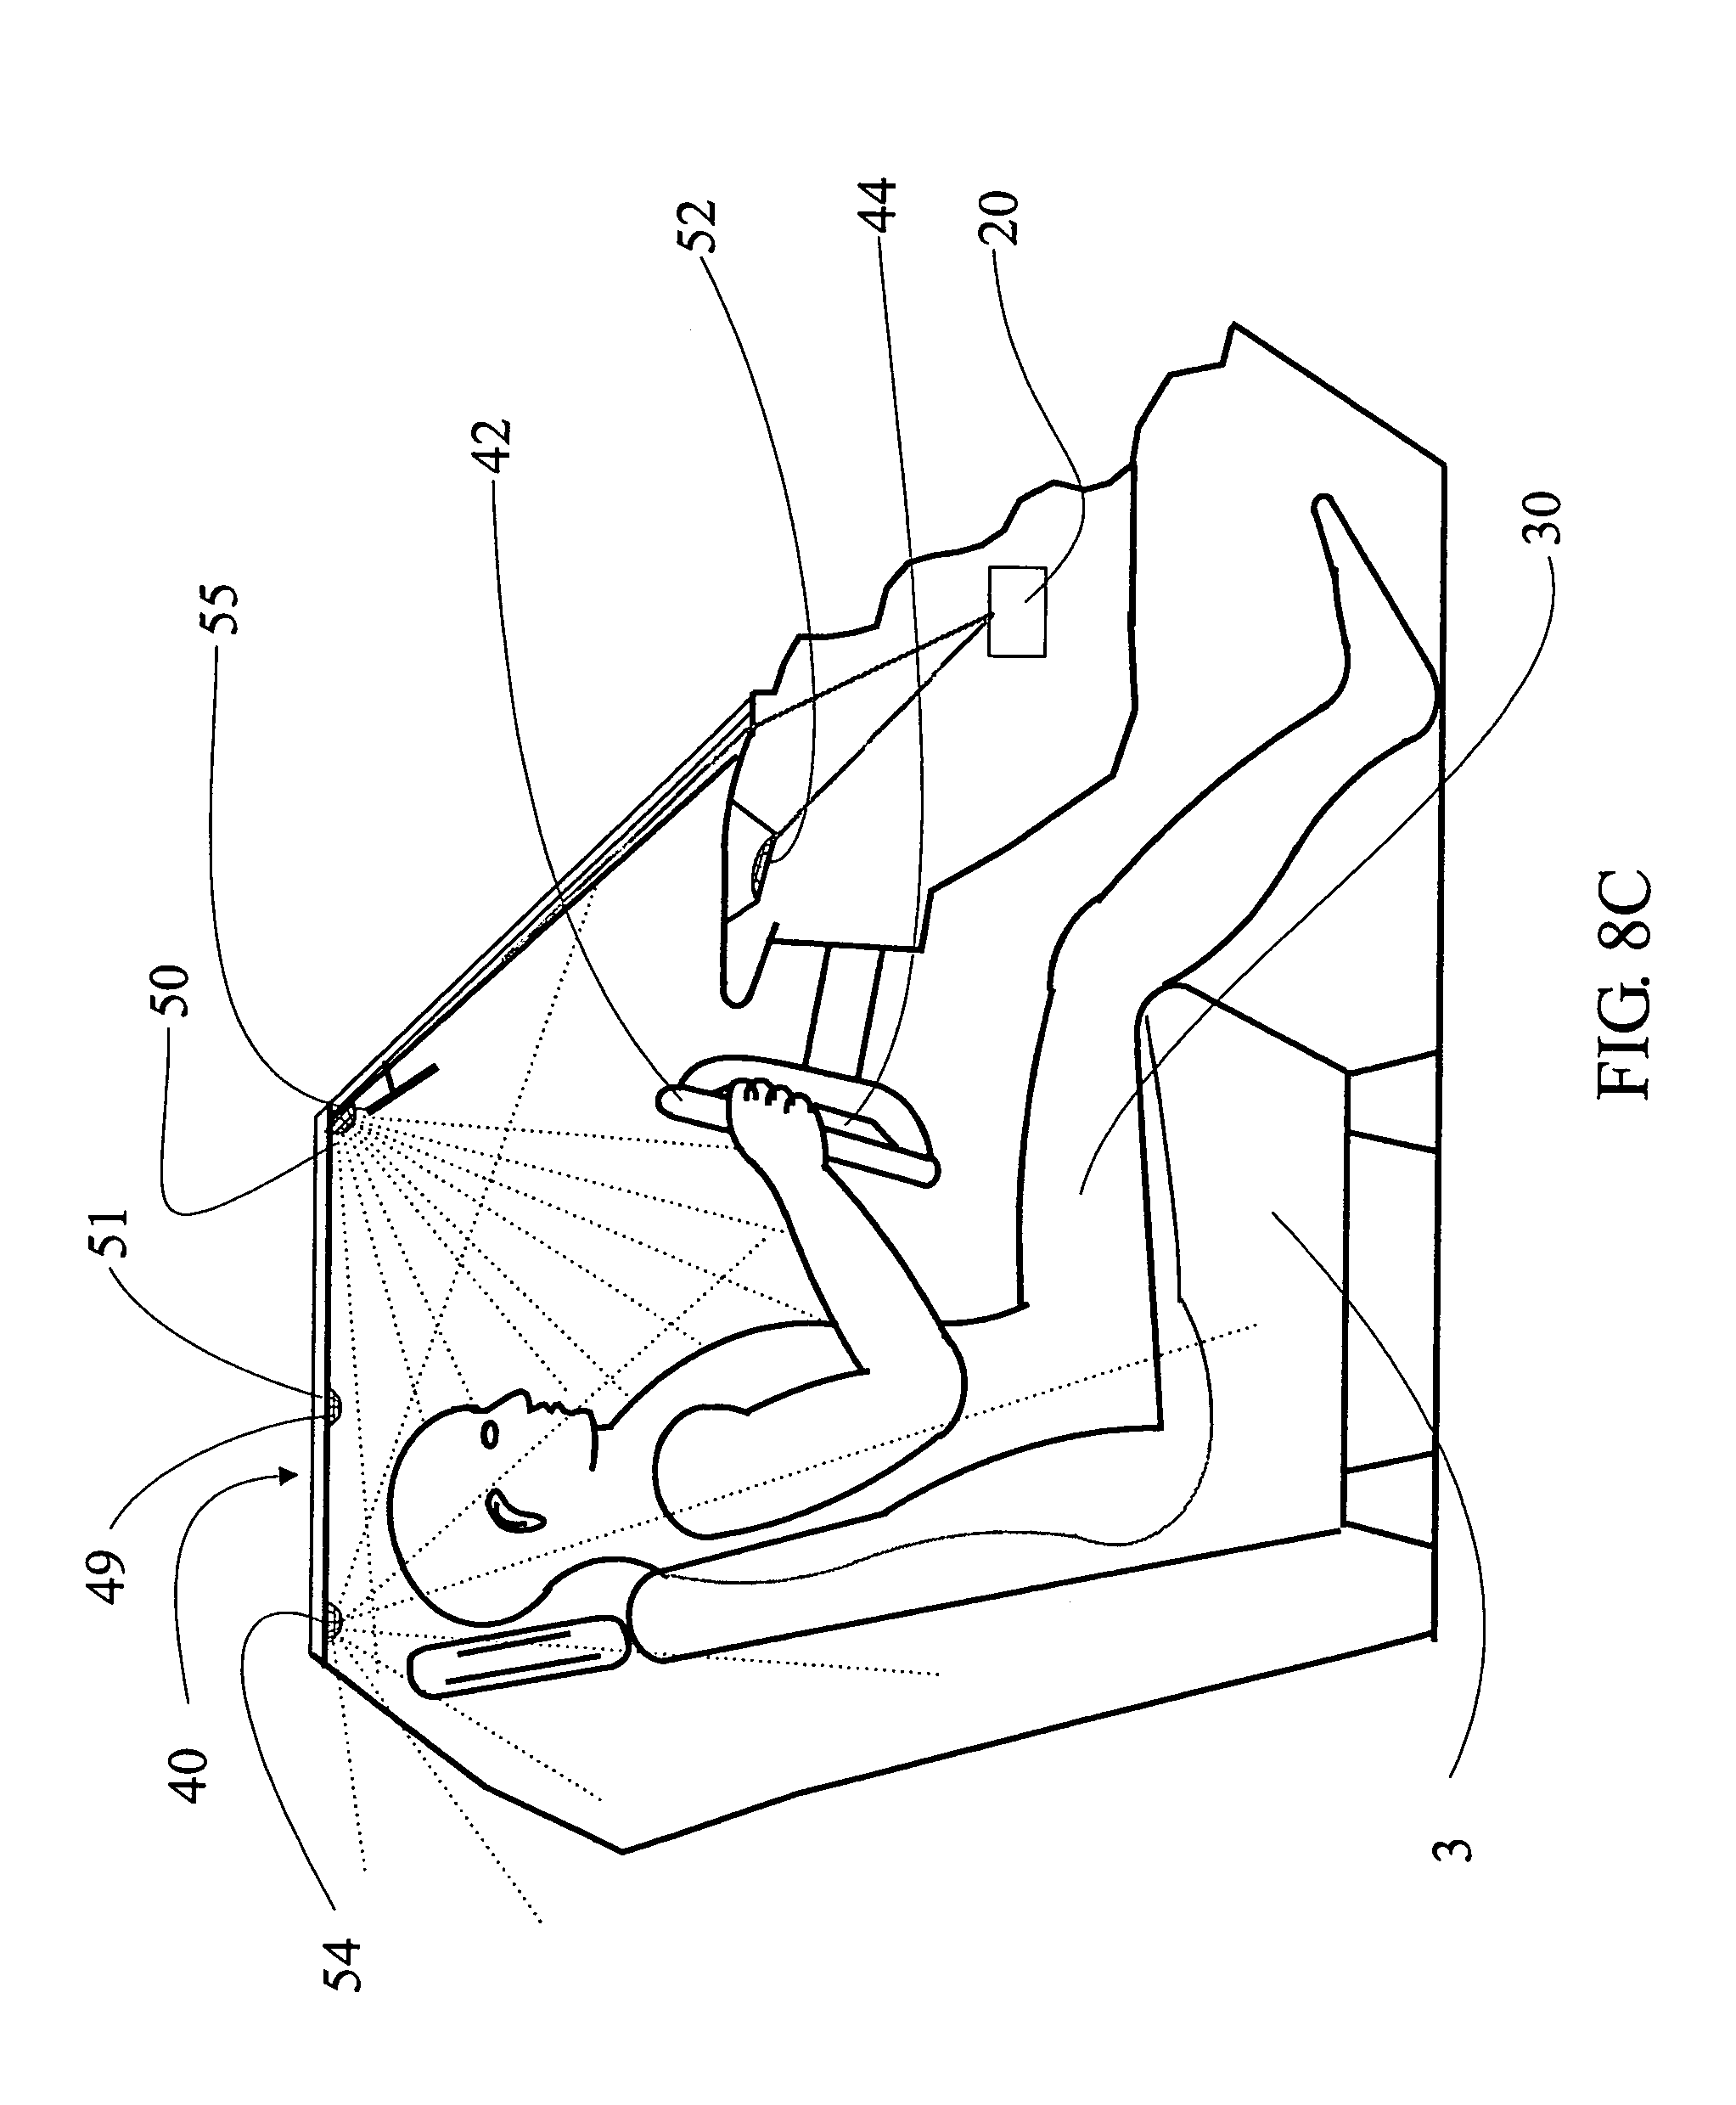 Patent Us 7164117 B2 Cable39 To Run From That Patch Panel The Router Or Separate Switch Images